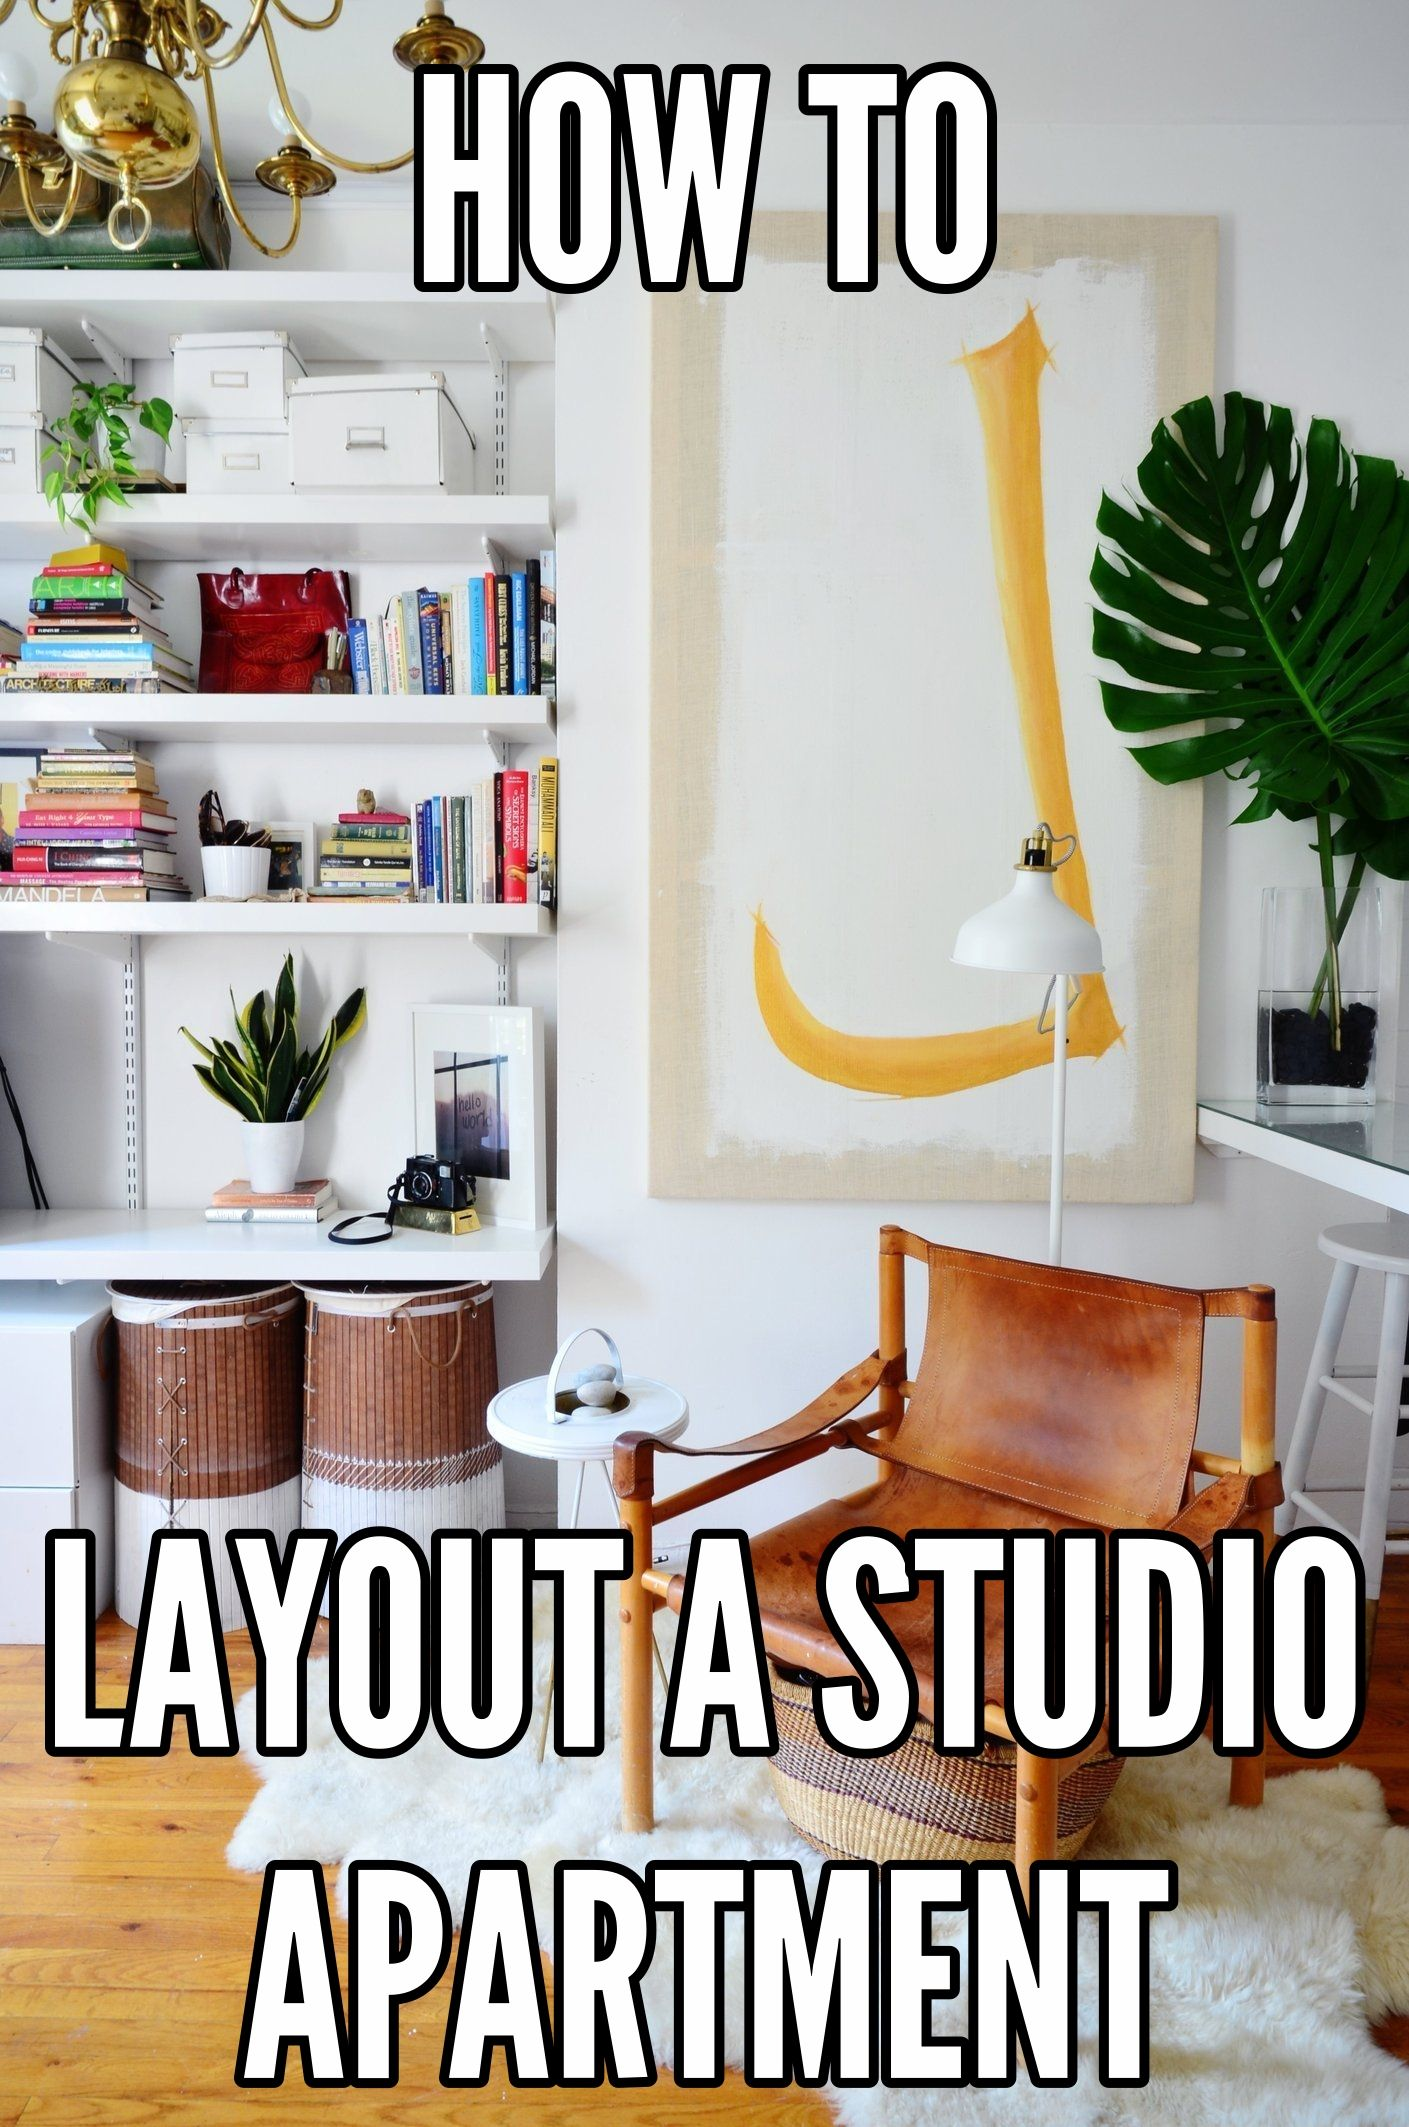 How To Arrange Your Furniture in a Studio Apartment | Pinterest ...